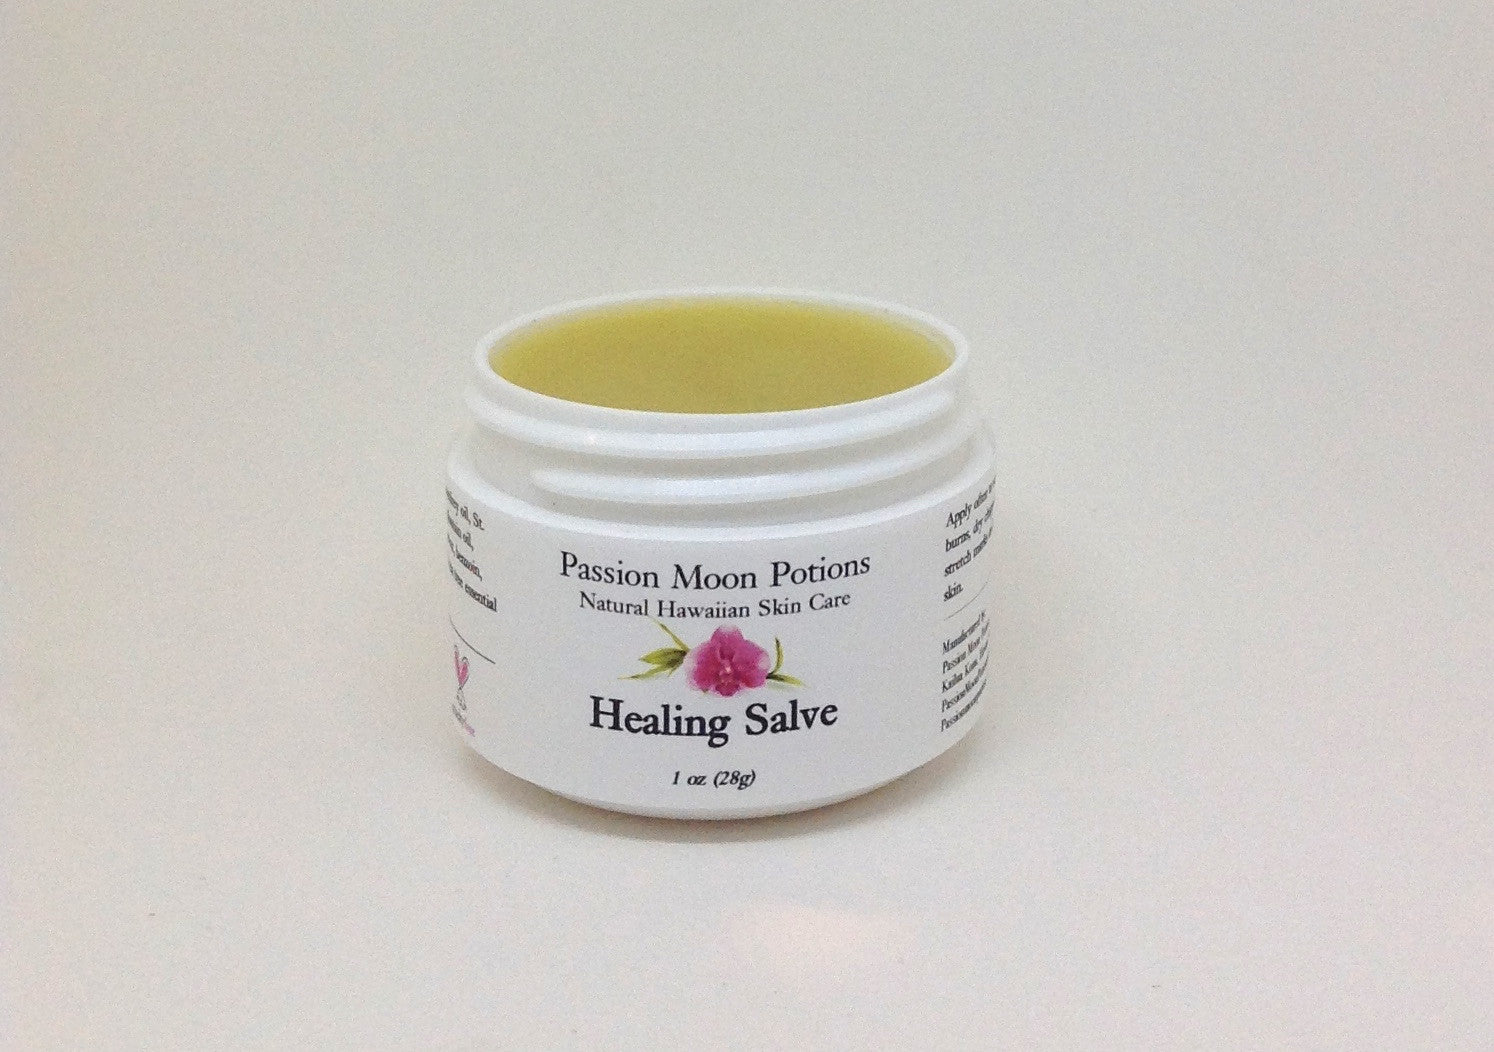 Healing Salve - Passion Moon Potions - 4